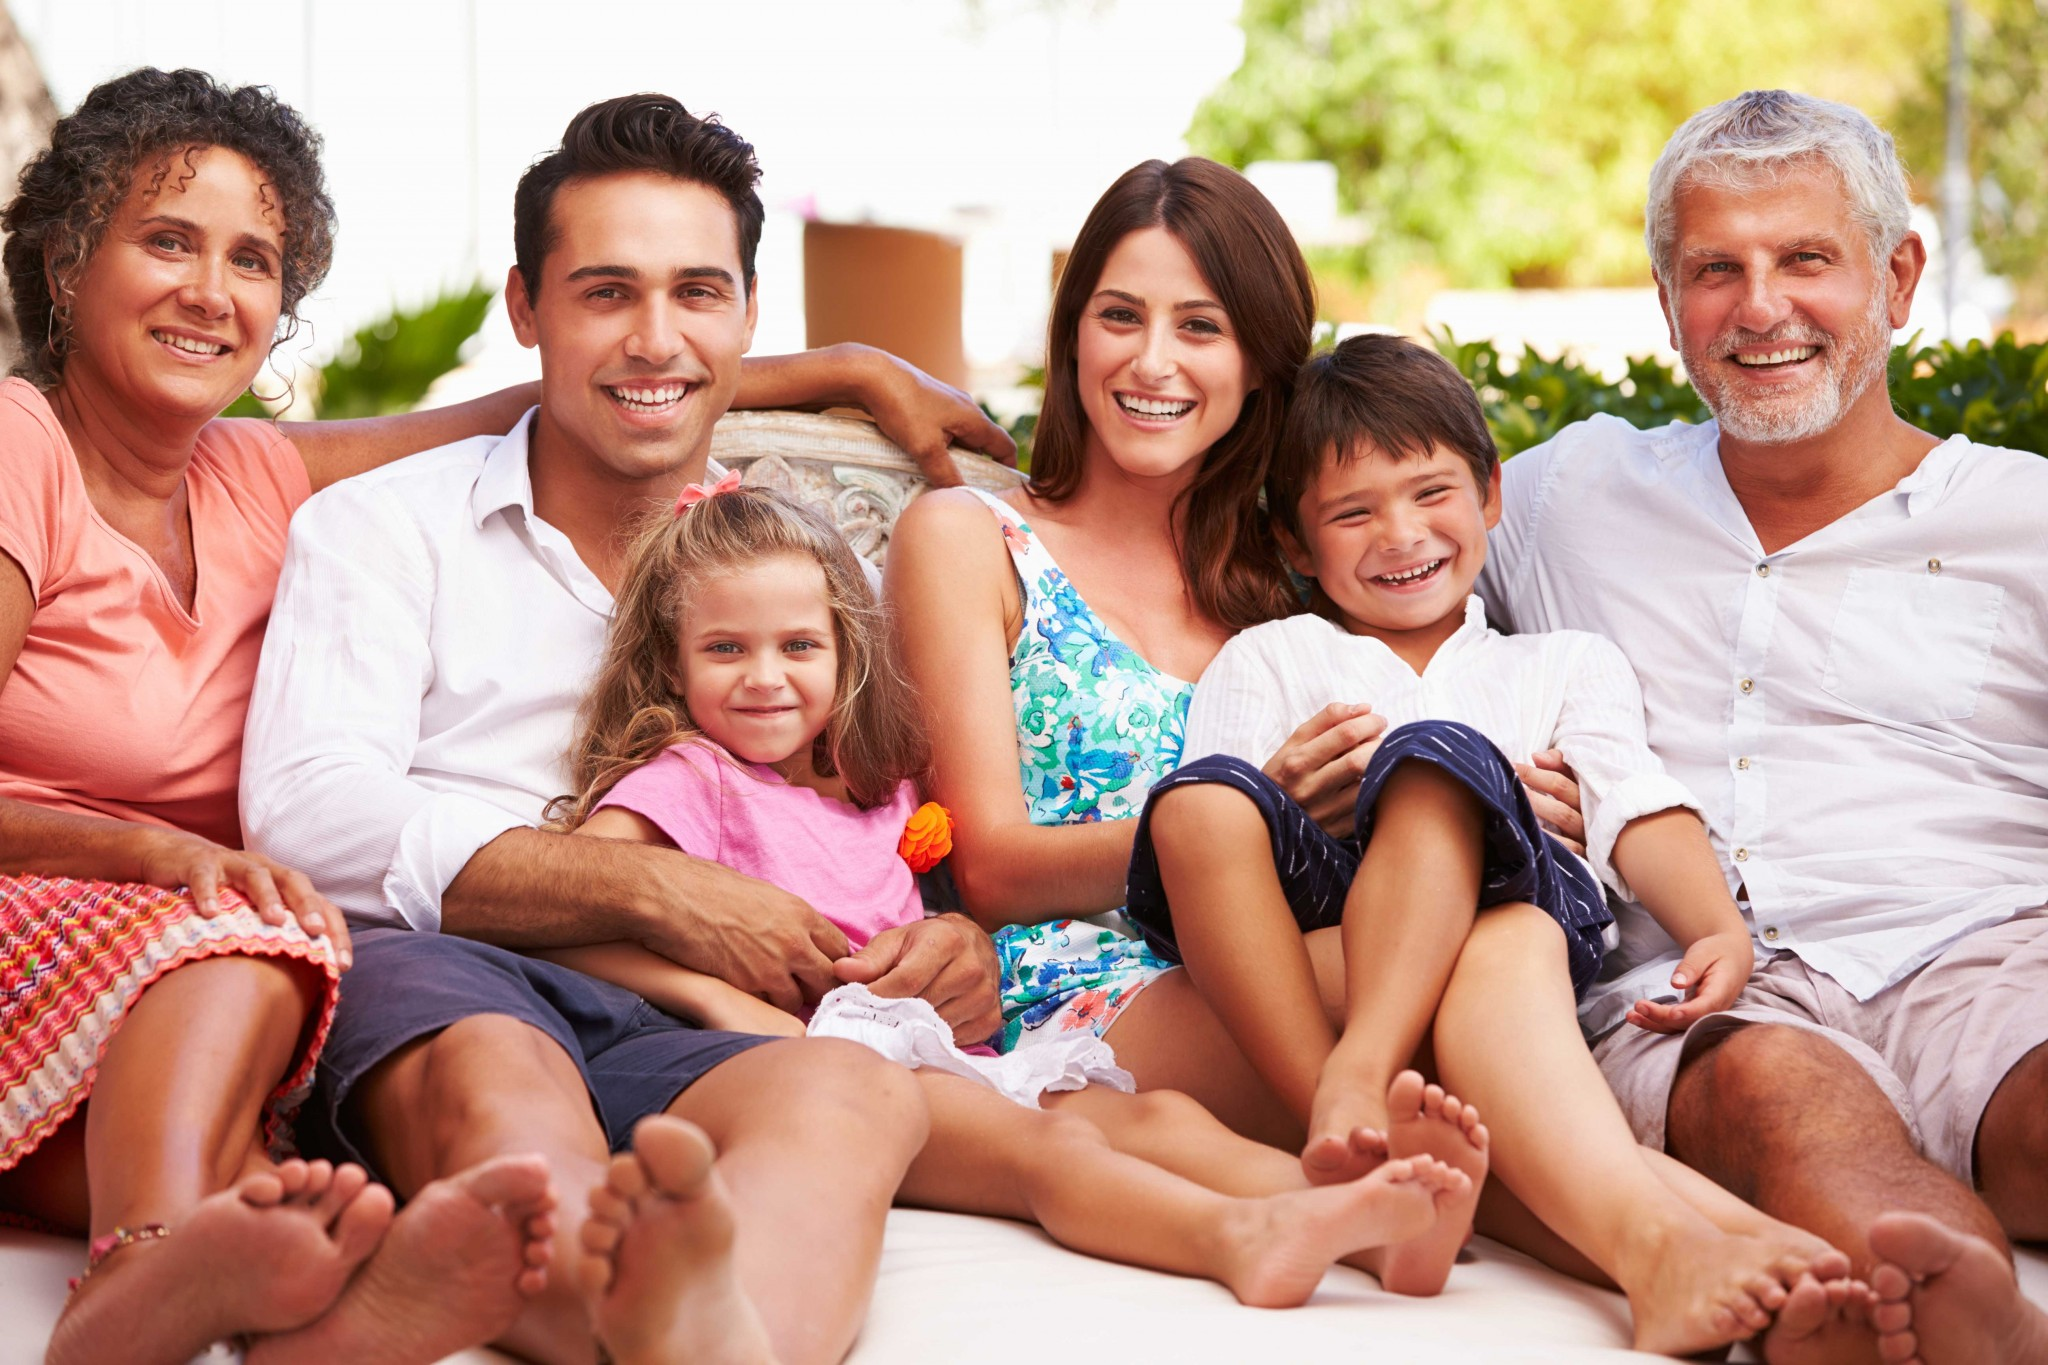 bigstock-Multi-Generation-Family-Sittin-79958966